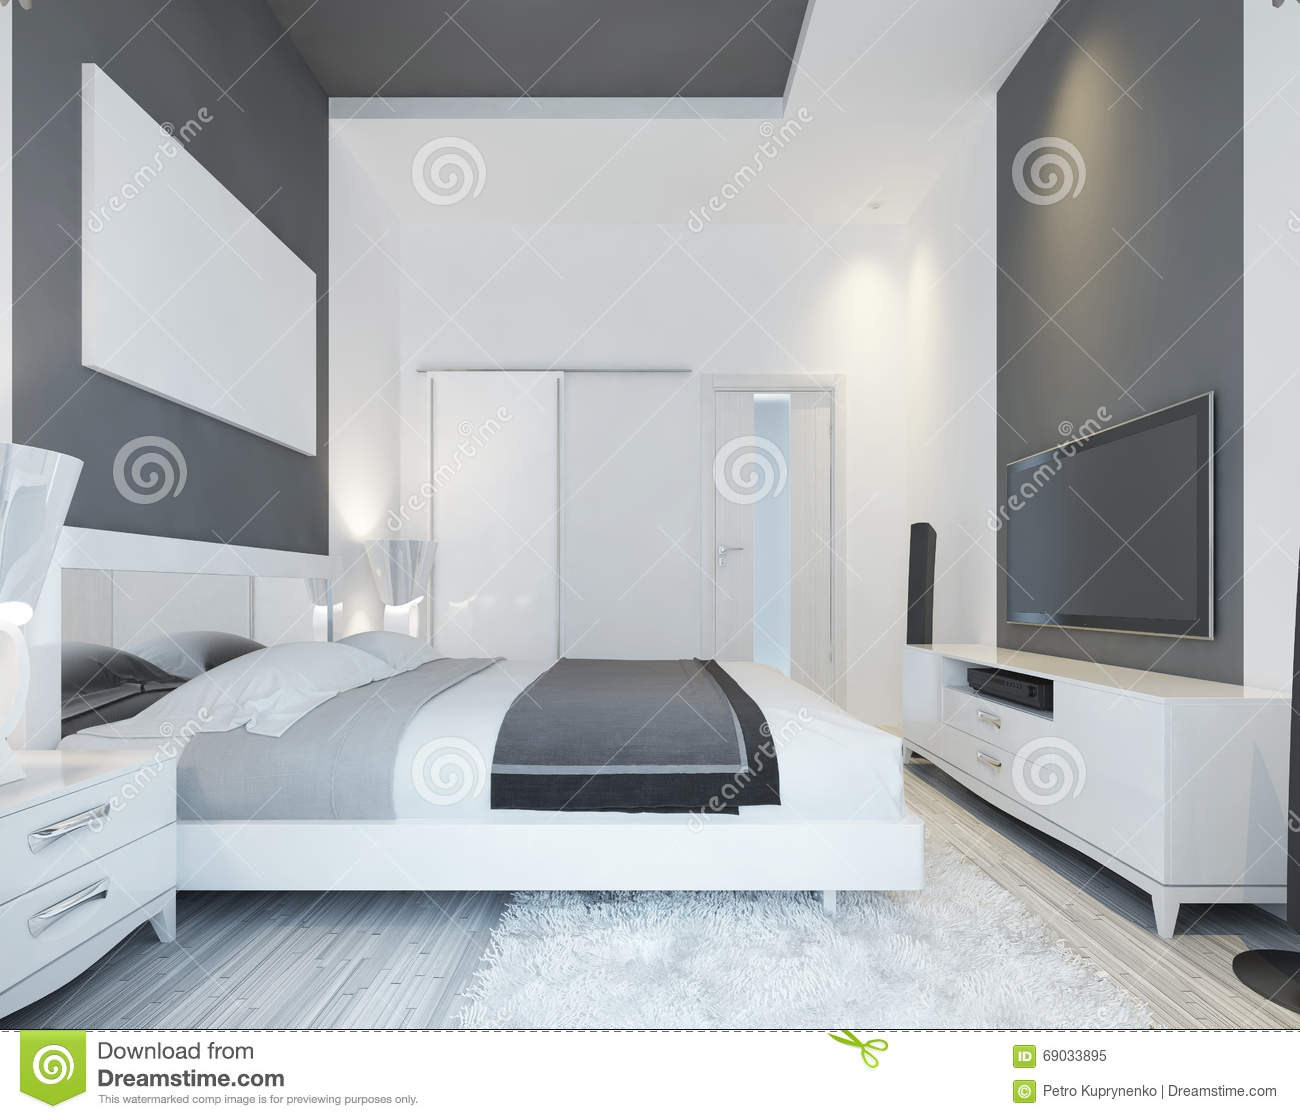 luxury bedroom with a bed in a modern style. stock illustration